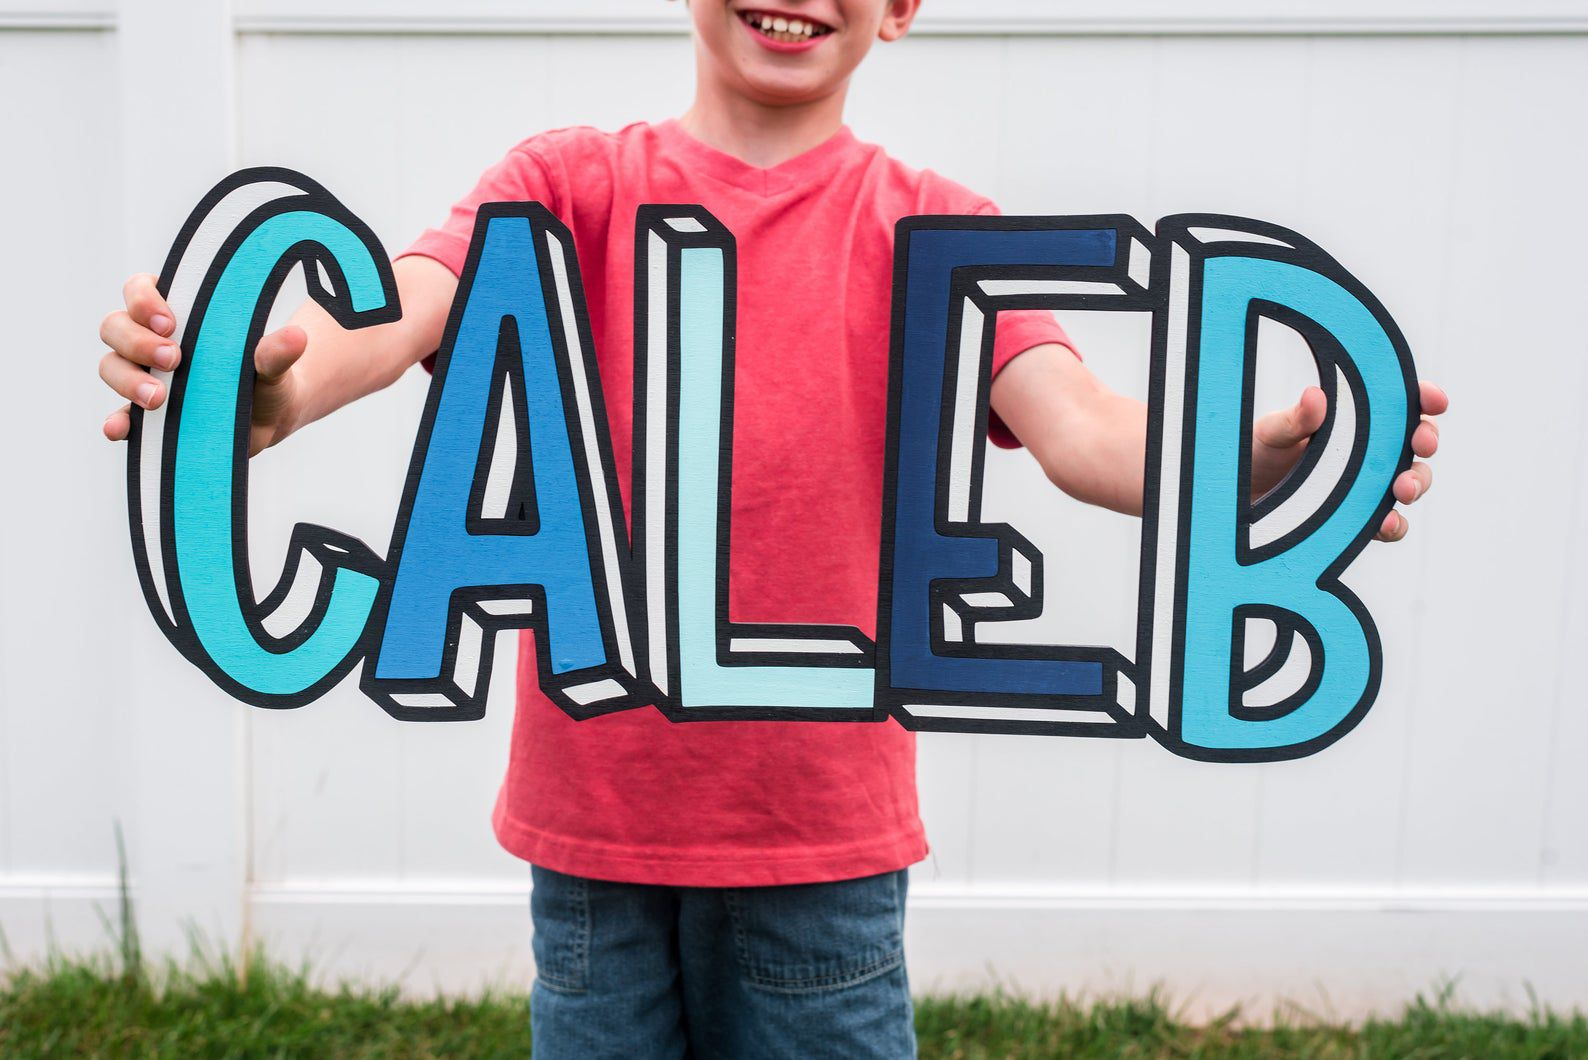 Image of customized comic book style sign with name CALEB.